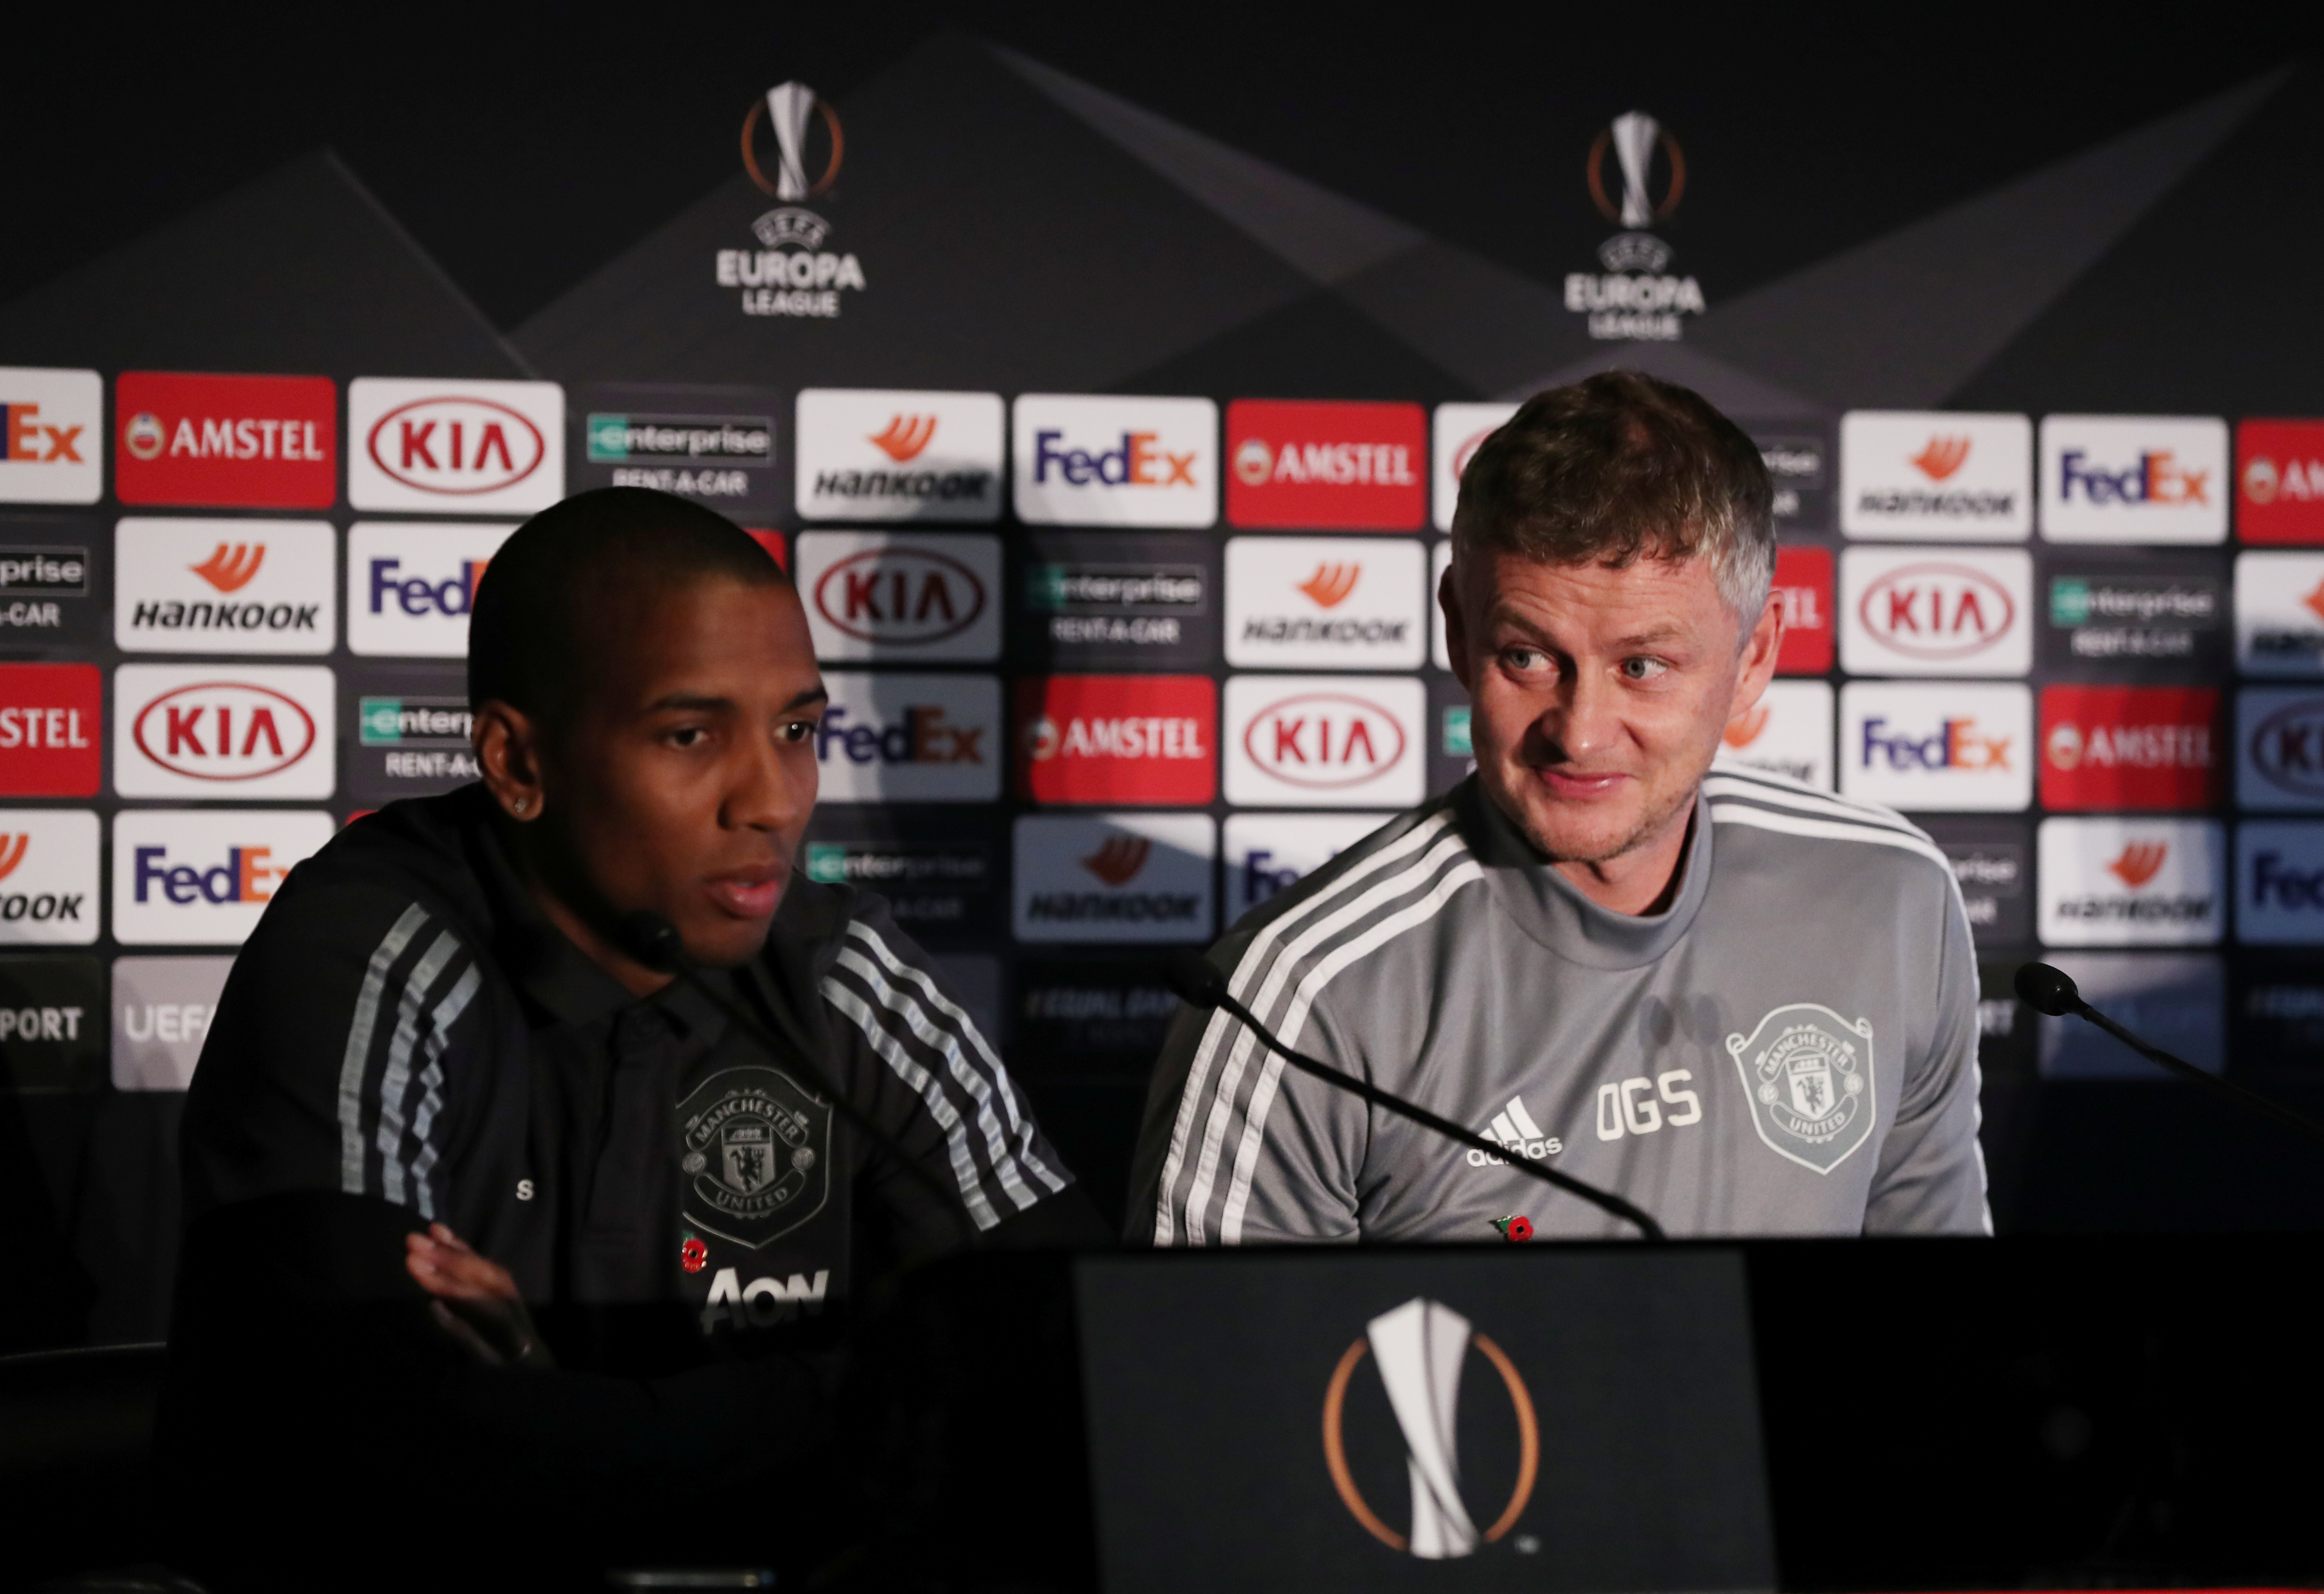 Ole wants to bring in youth for Europa